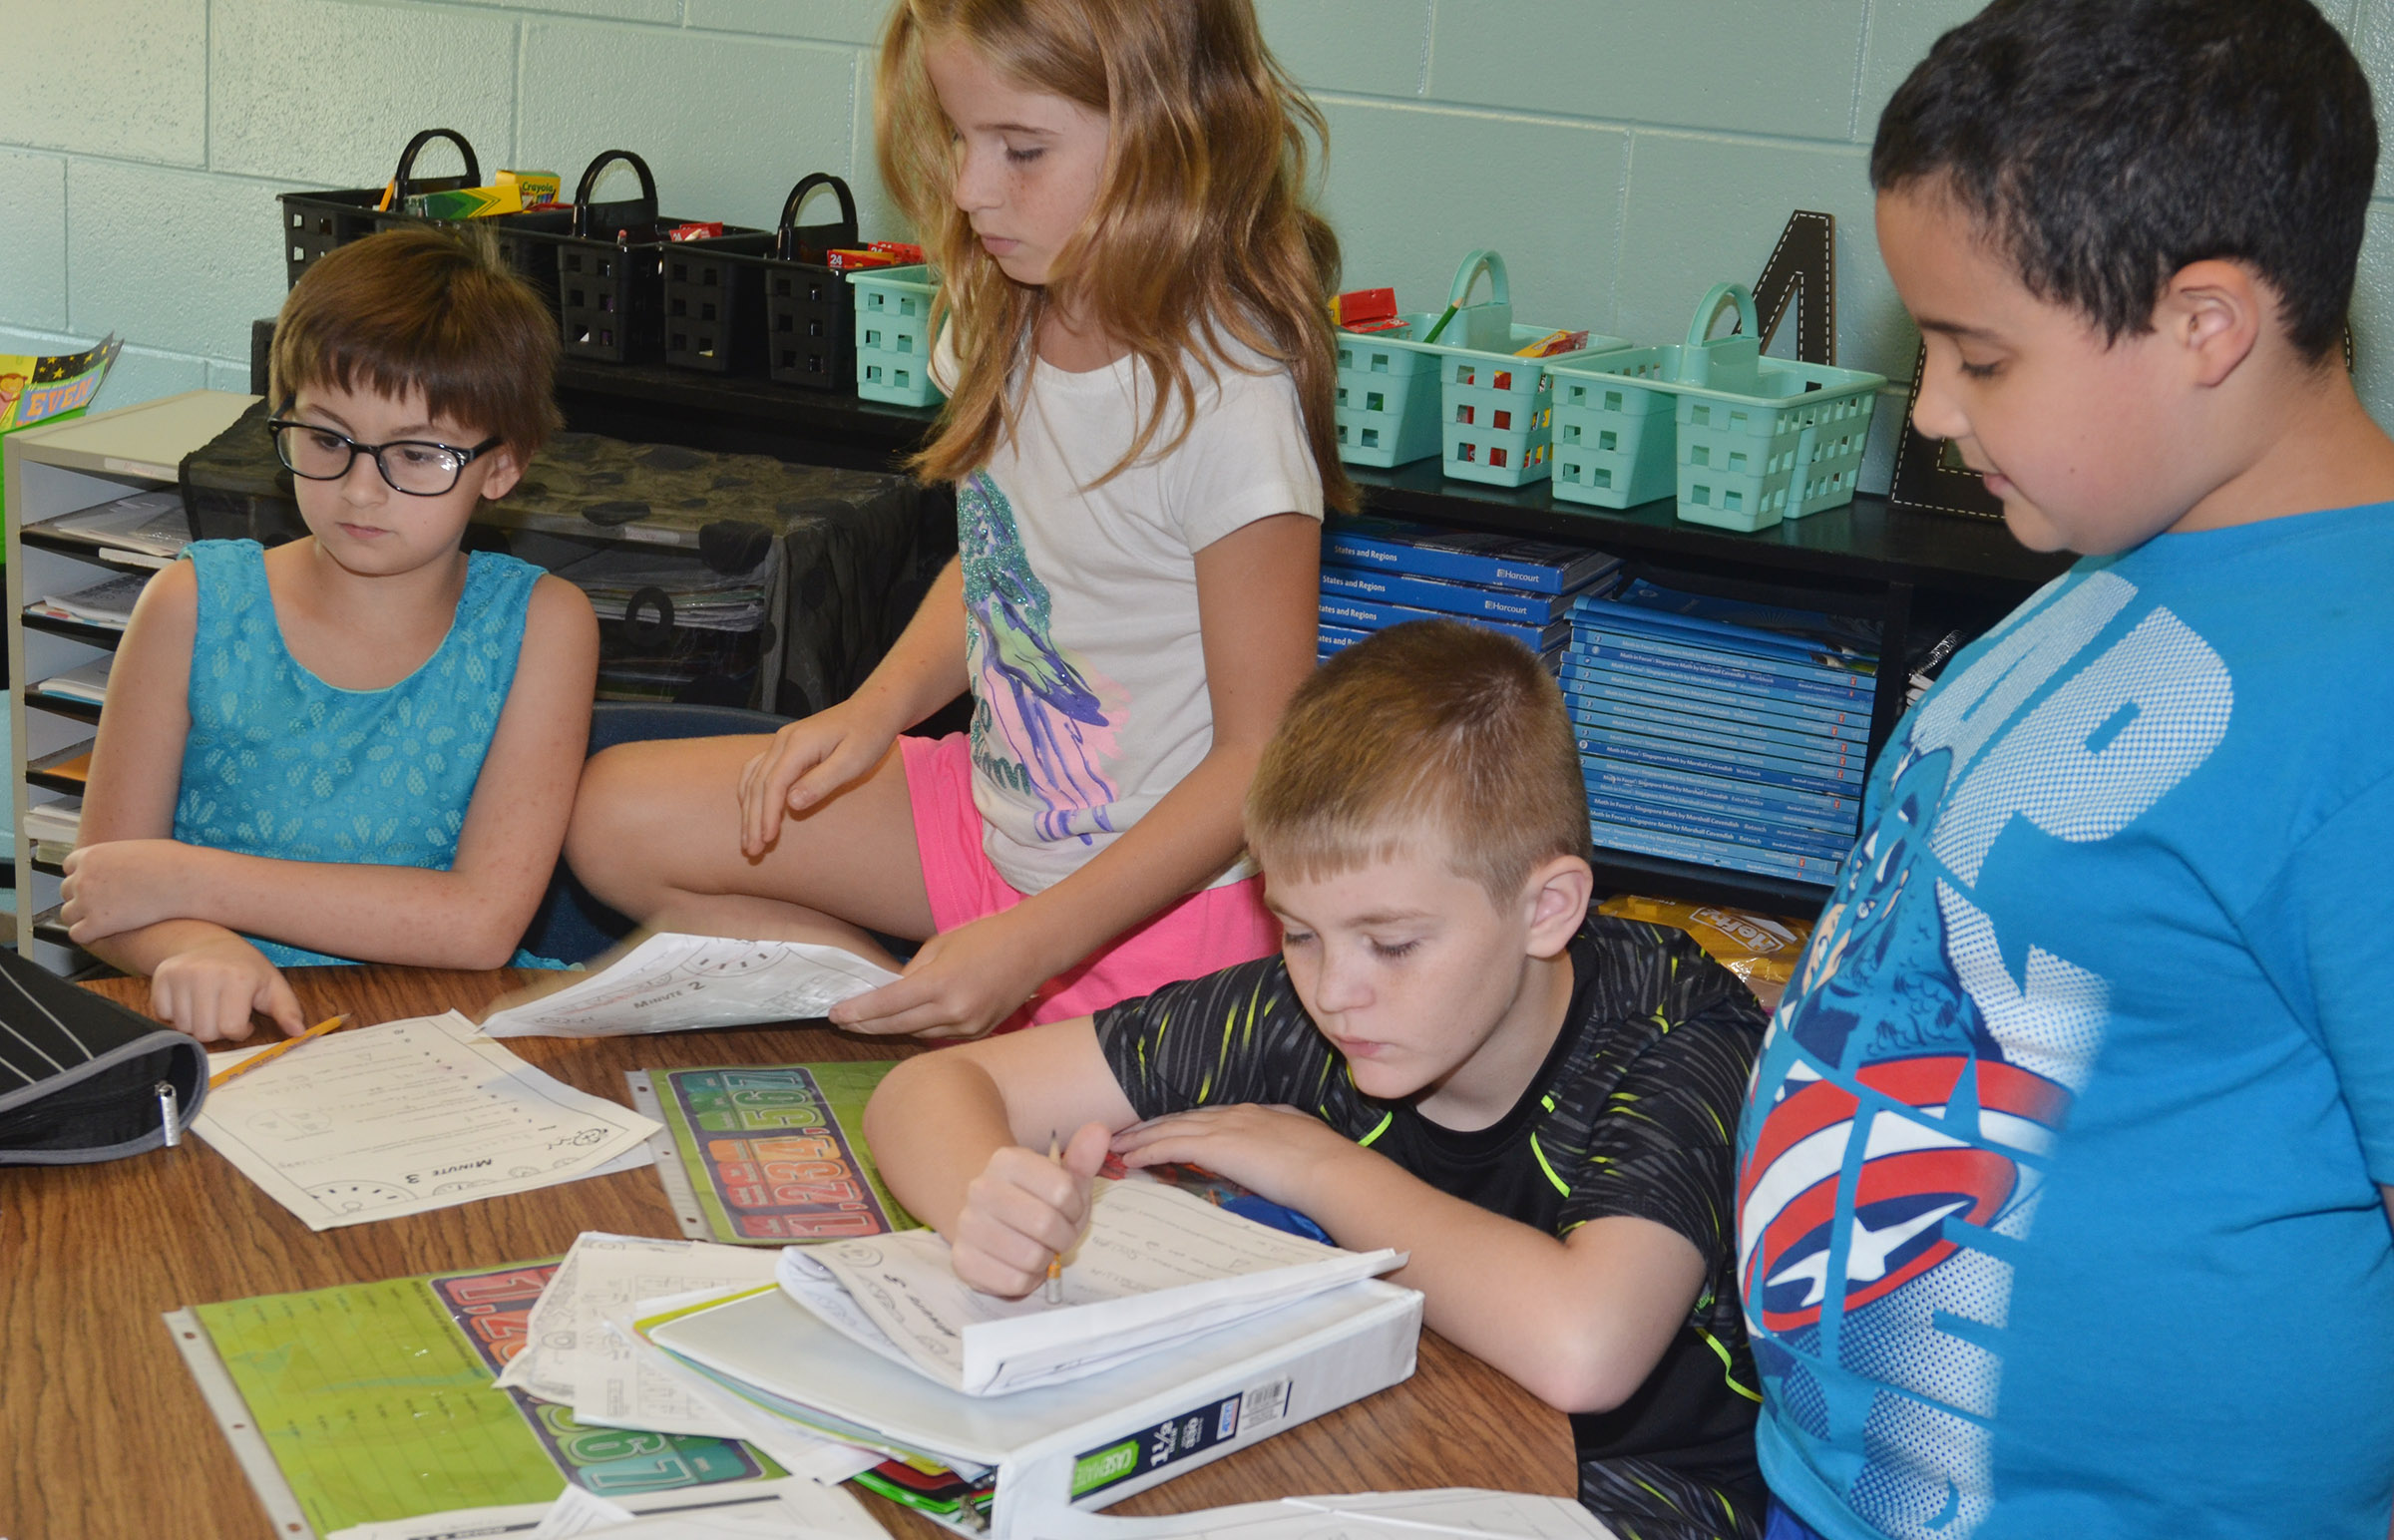 CES fourth-graders, from left, Raeanna Jefferson, Raegan Hayes, Cash Cowan and Tayshaun Hickman work on place value worksheets.